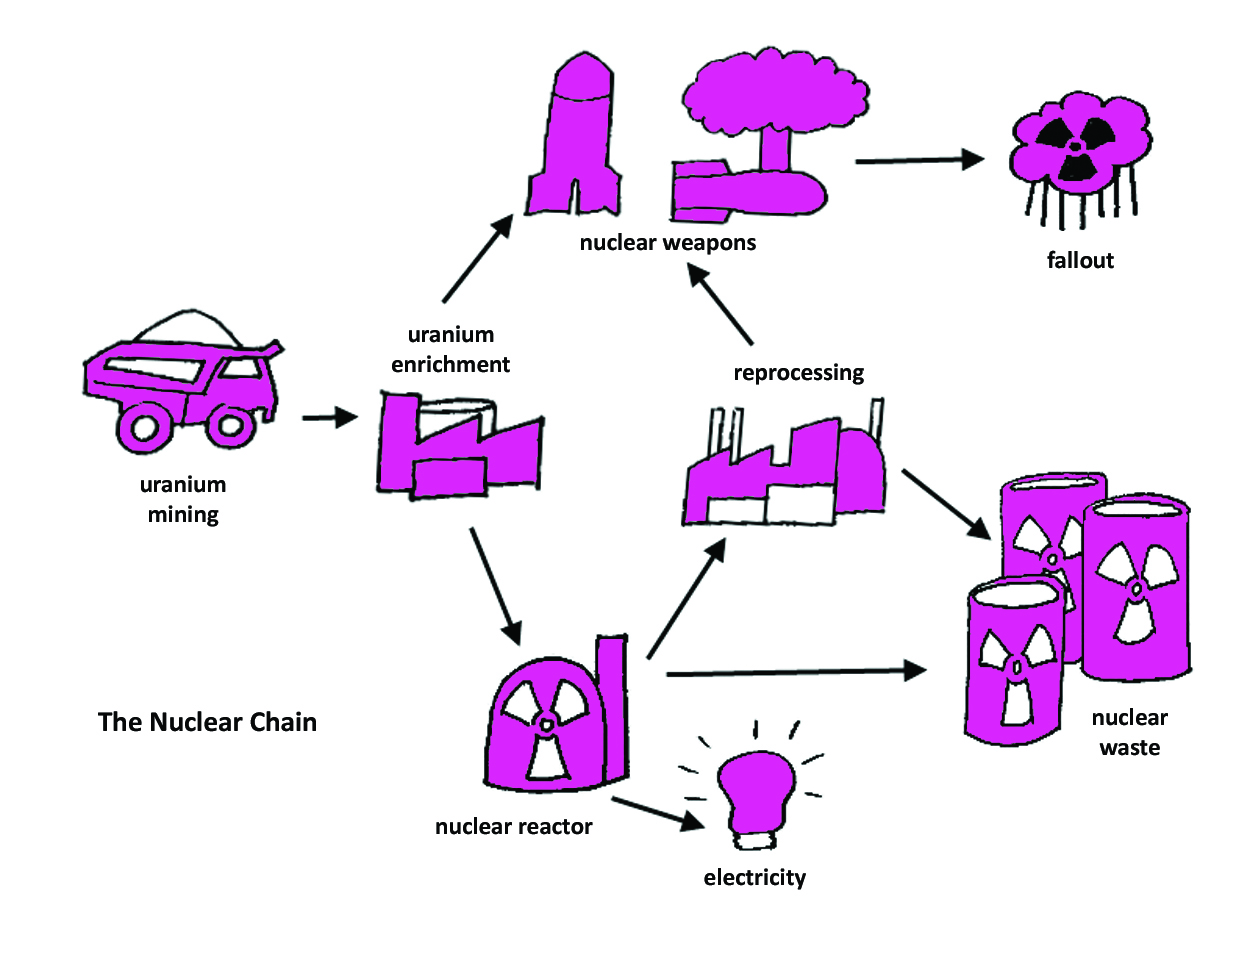 energy essay nuclear use Introduction nuclear energy, also known as atomic energy, was first discovered by french scientist henri becquerel in 1896 according to science.